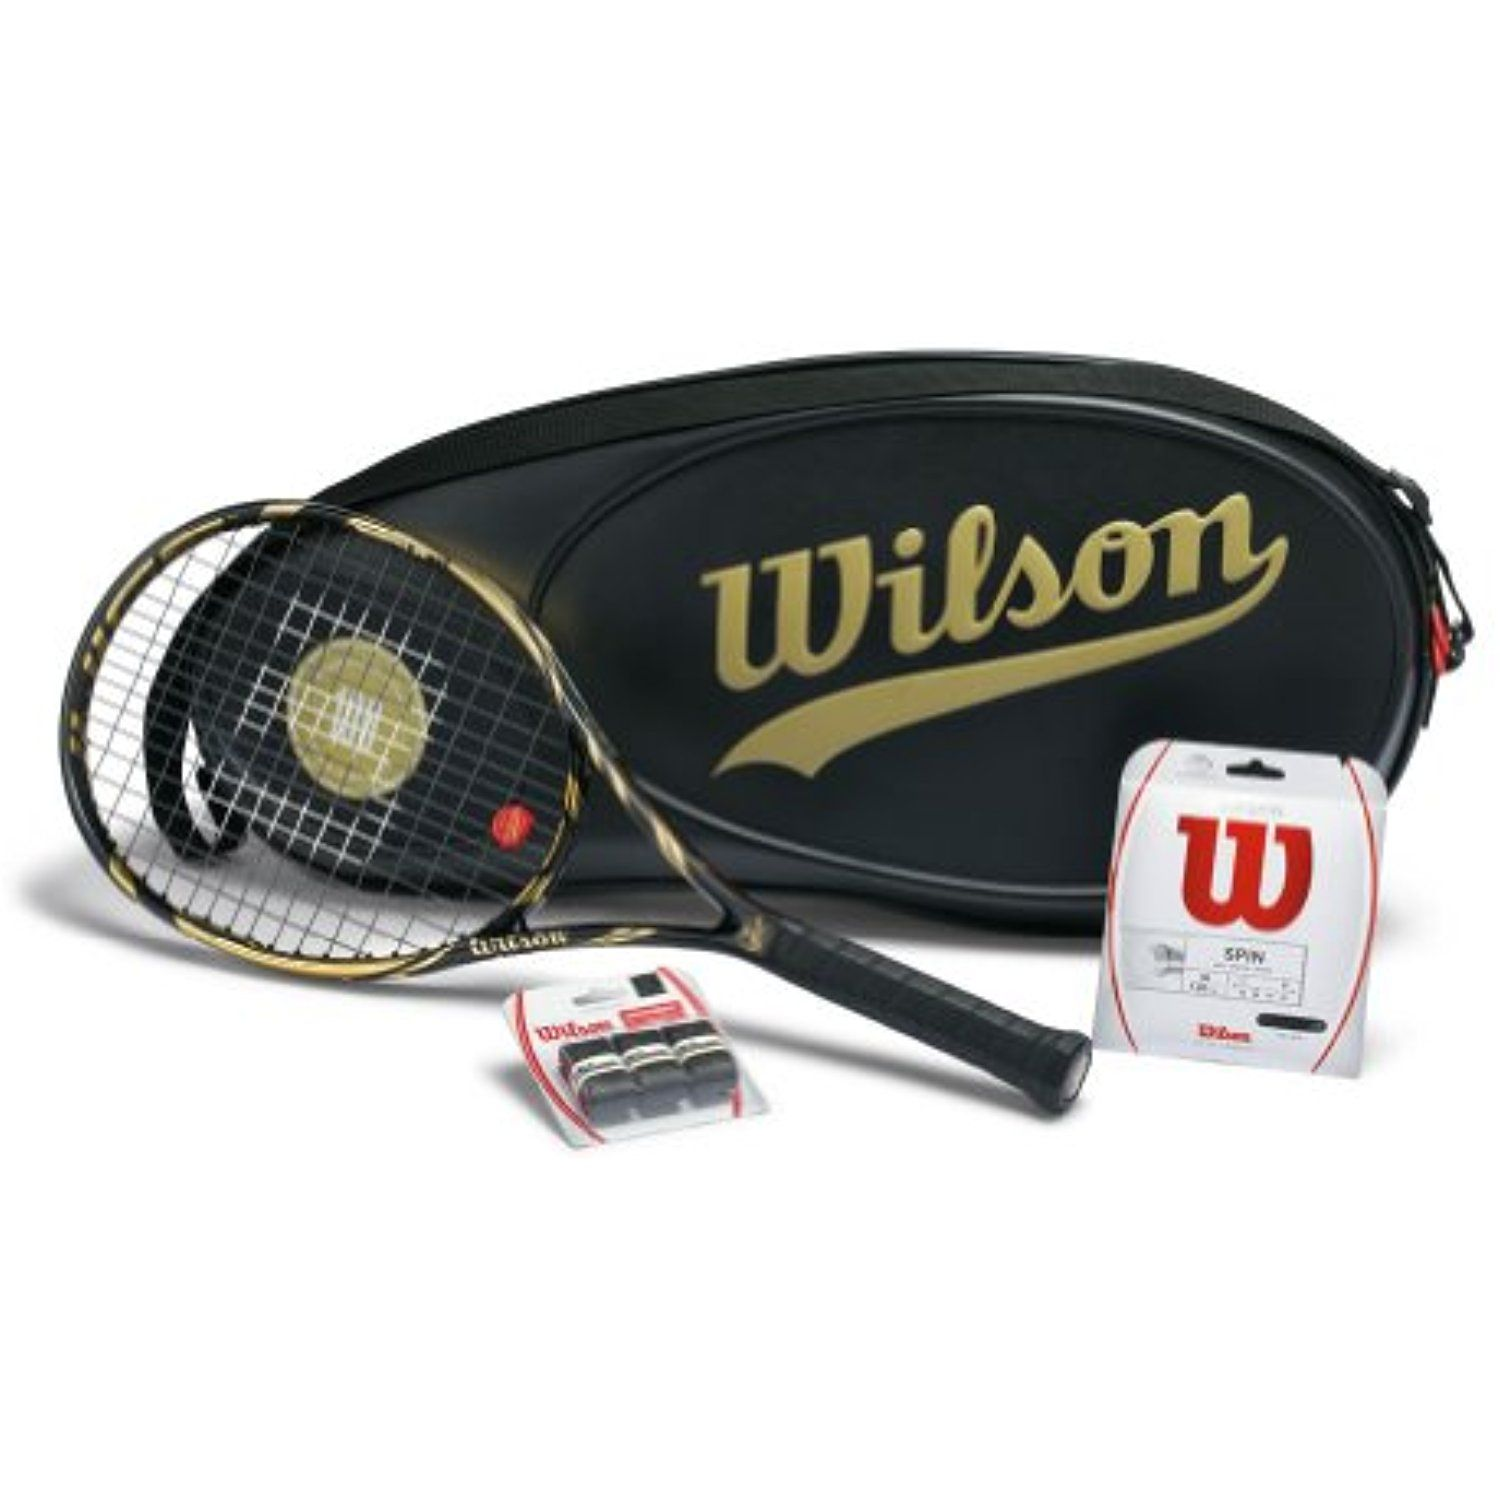 Juice 100S 100 Year Tennis Racquet Set Check out this